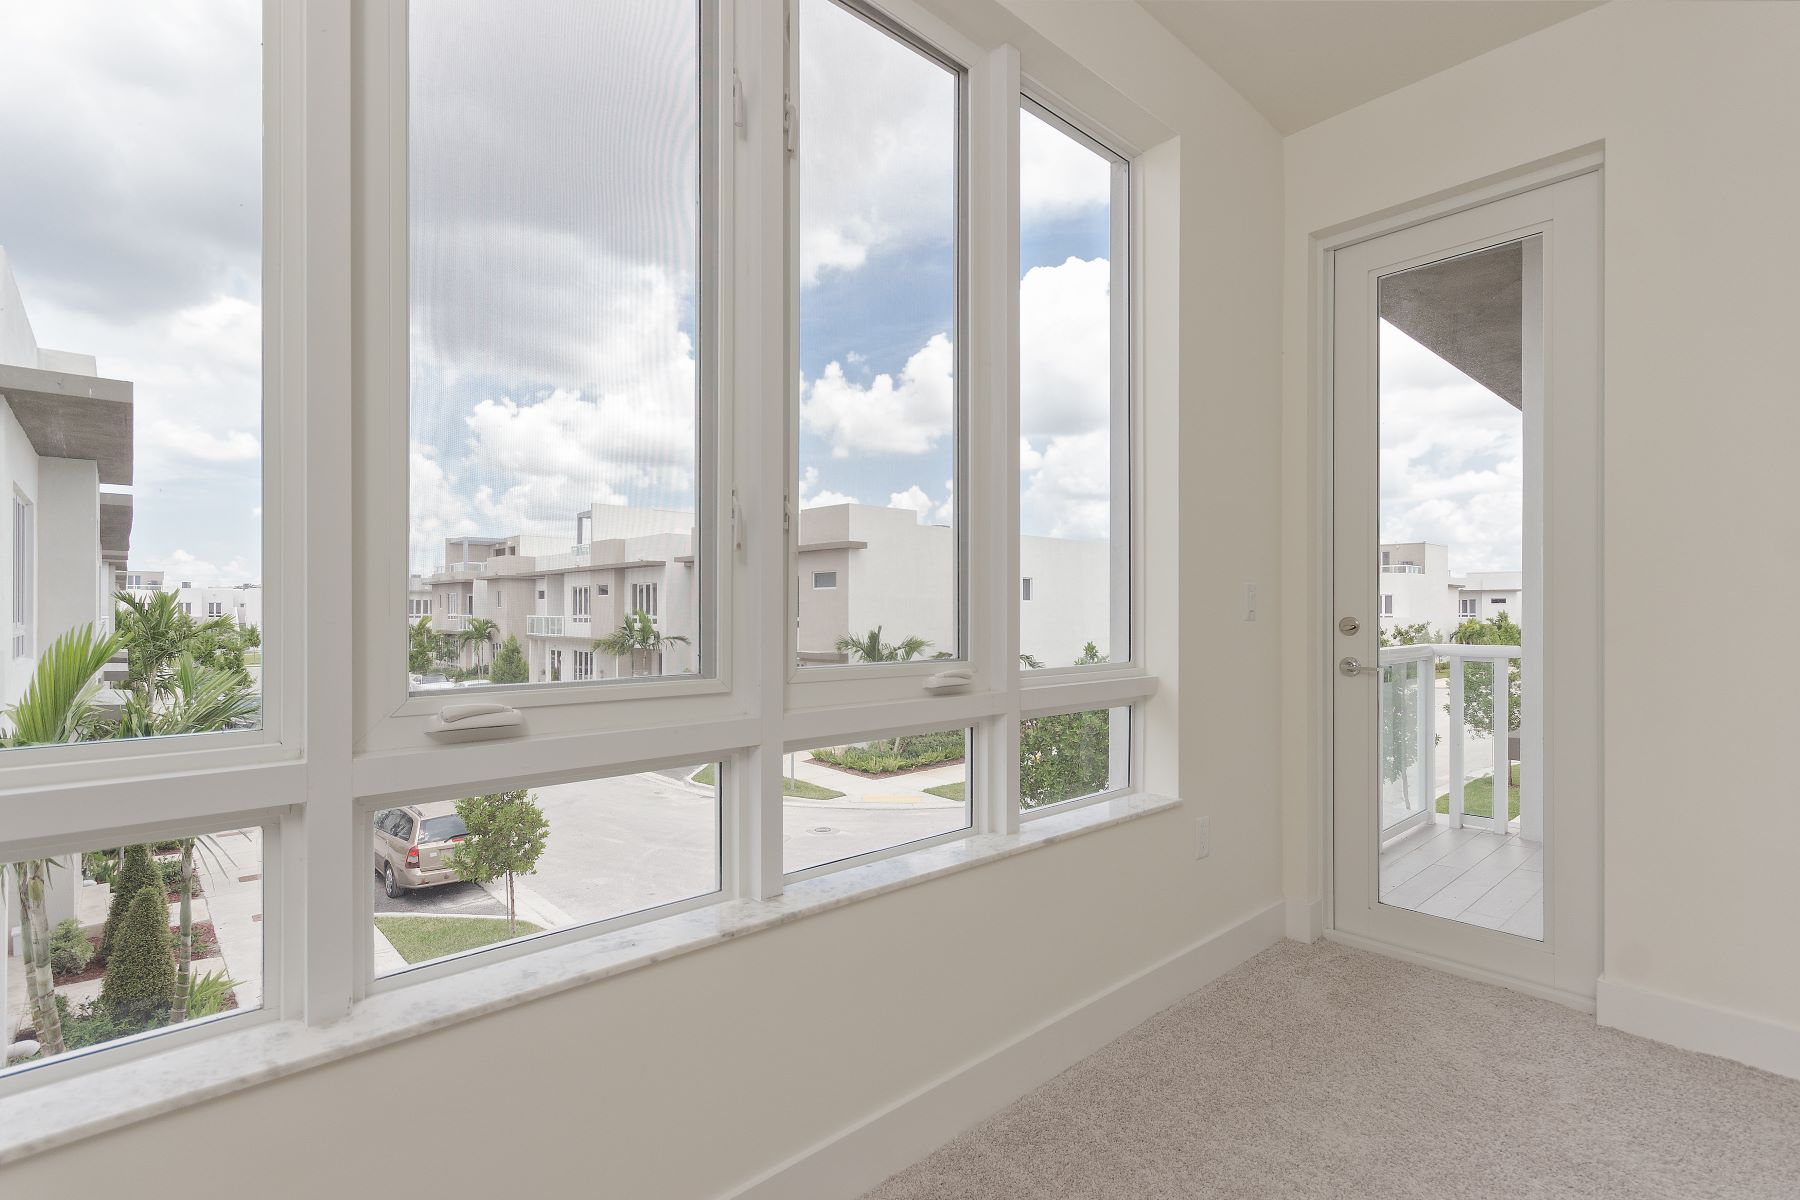 townhouses for Active at 6307 Nw 103rd Psge 6307 Doral, Florida 33178 United States